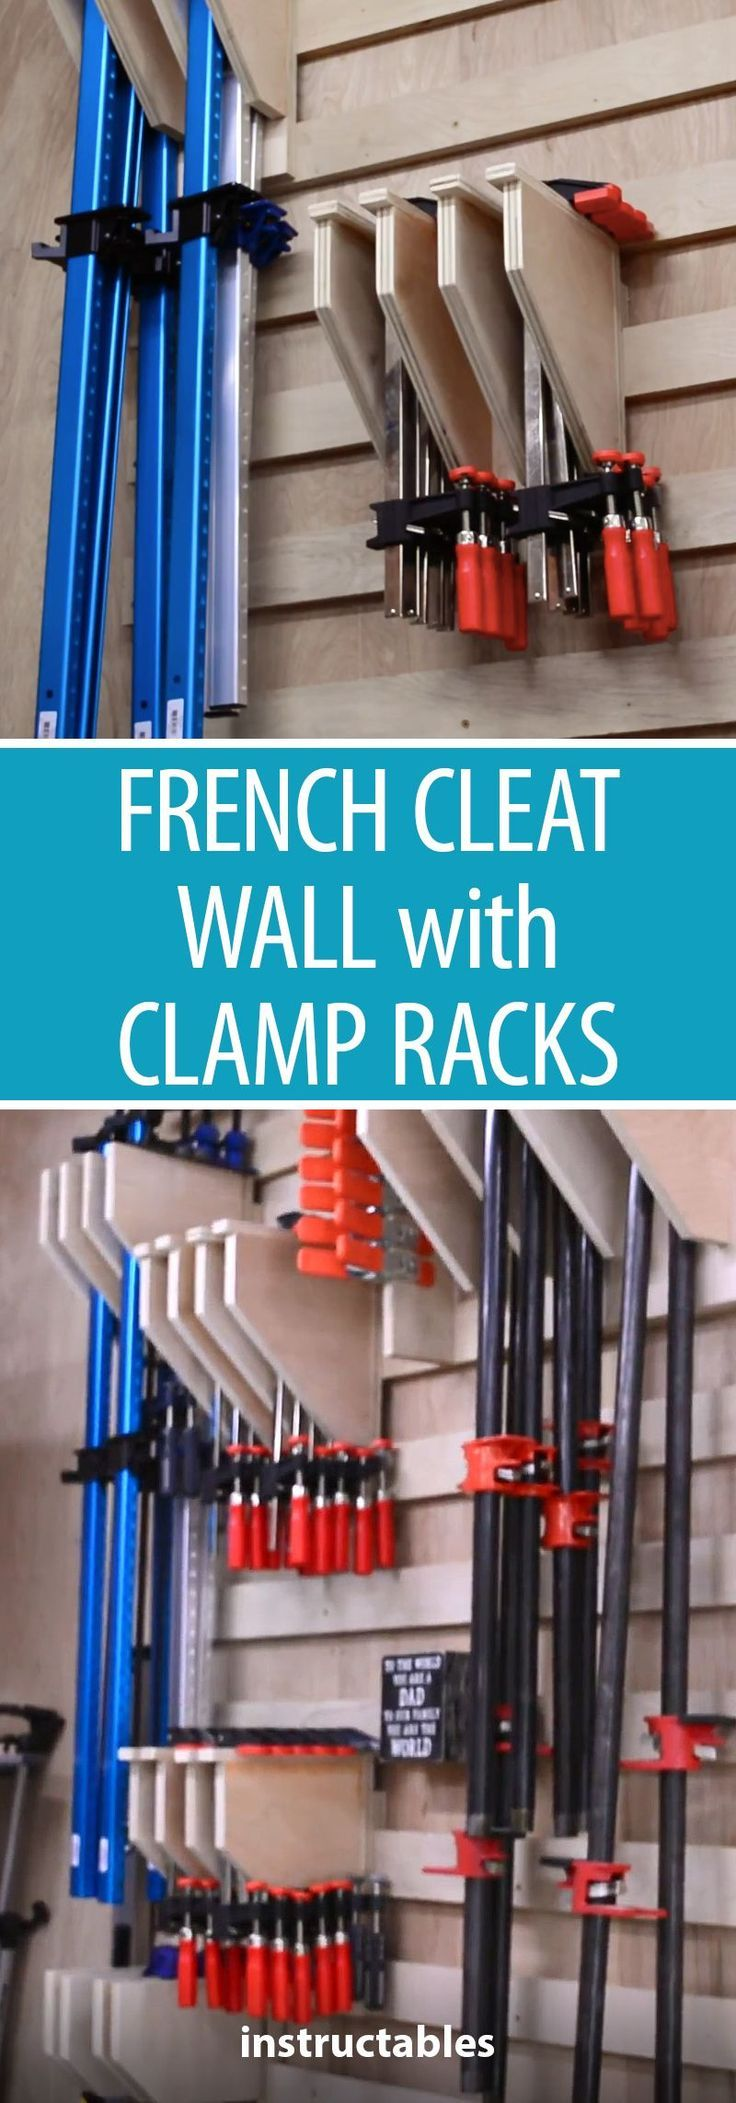 French Cleat Wall With Clamp Racks – #CLAMP #Cleat…